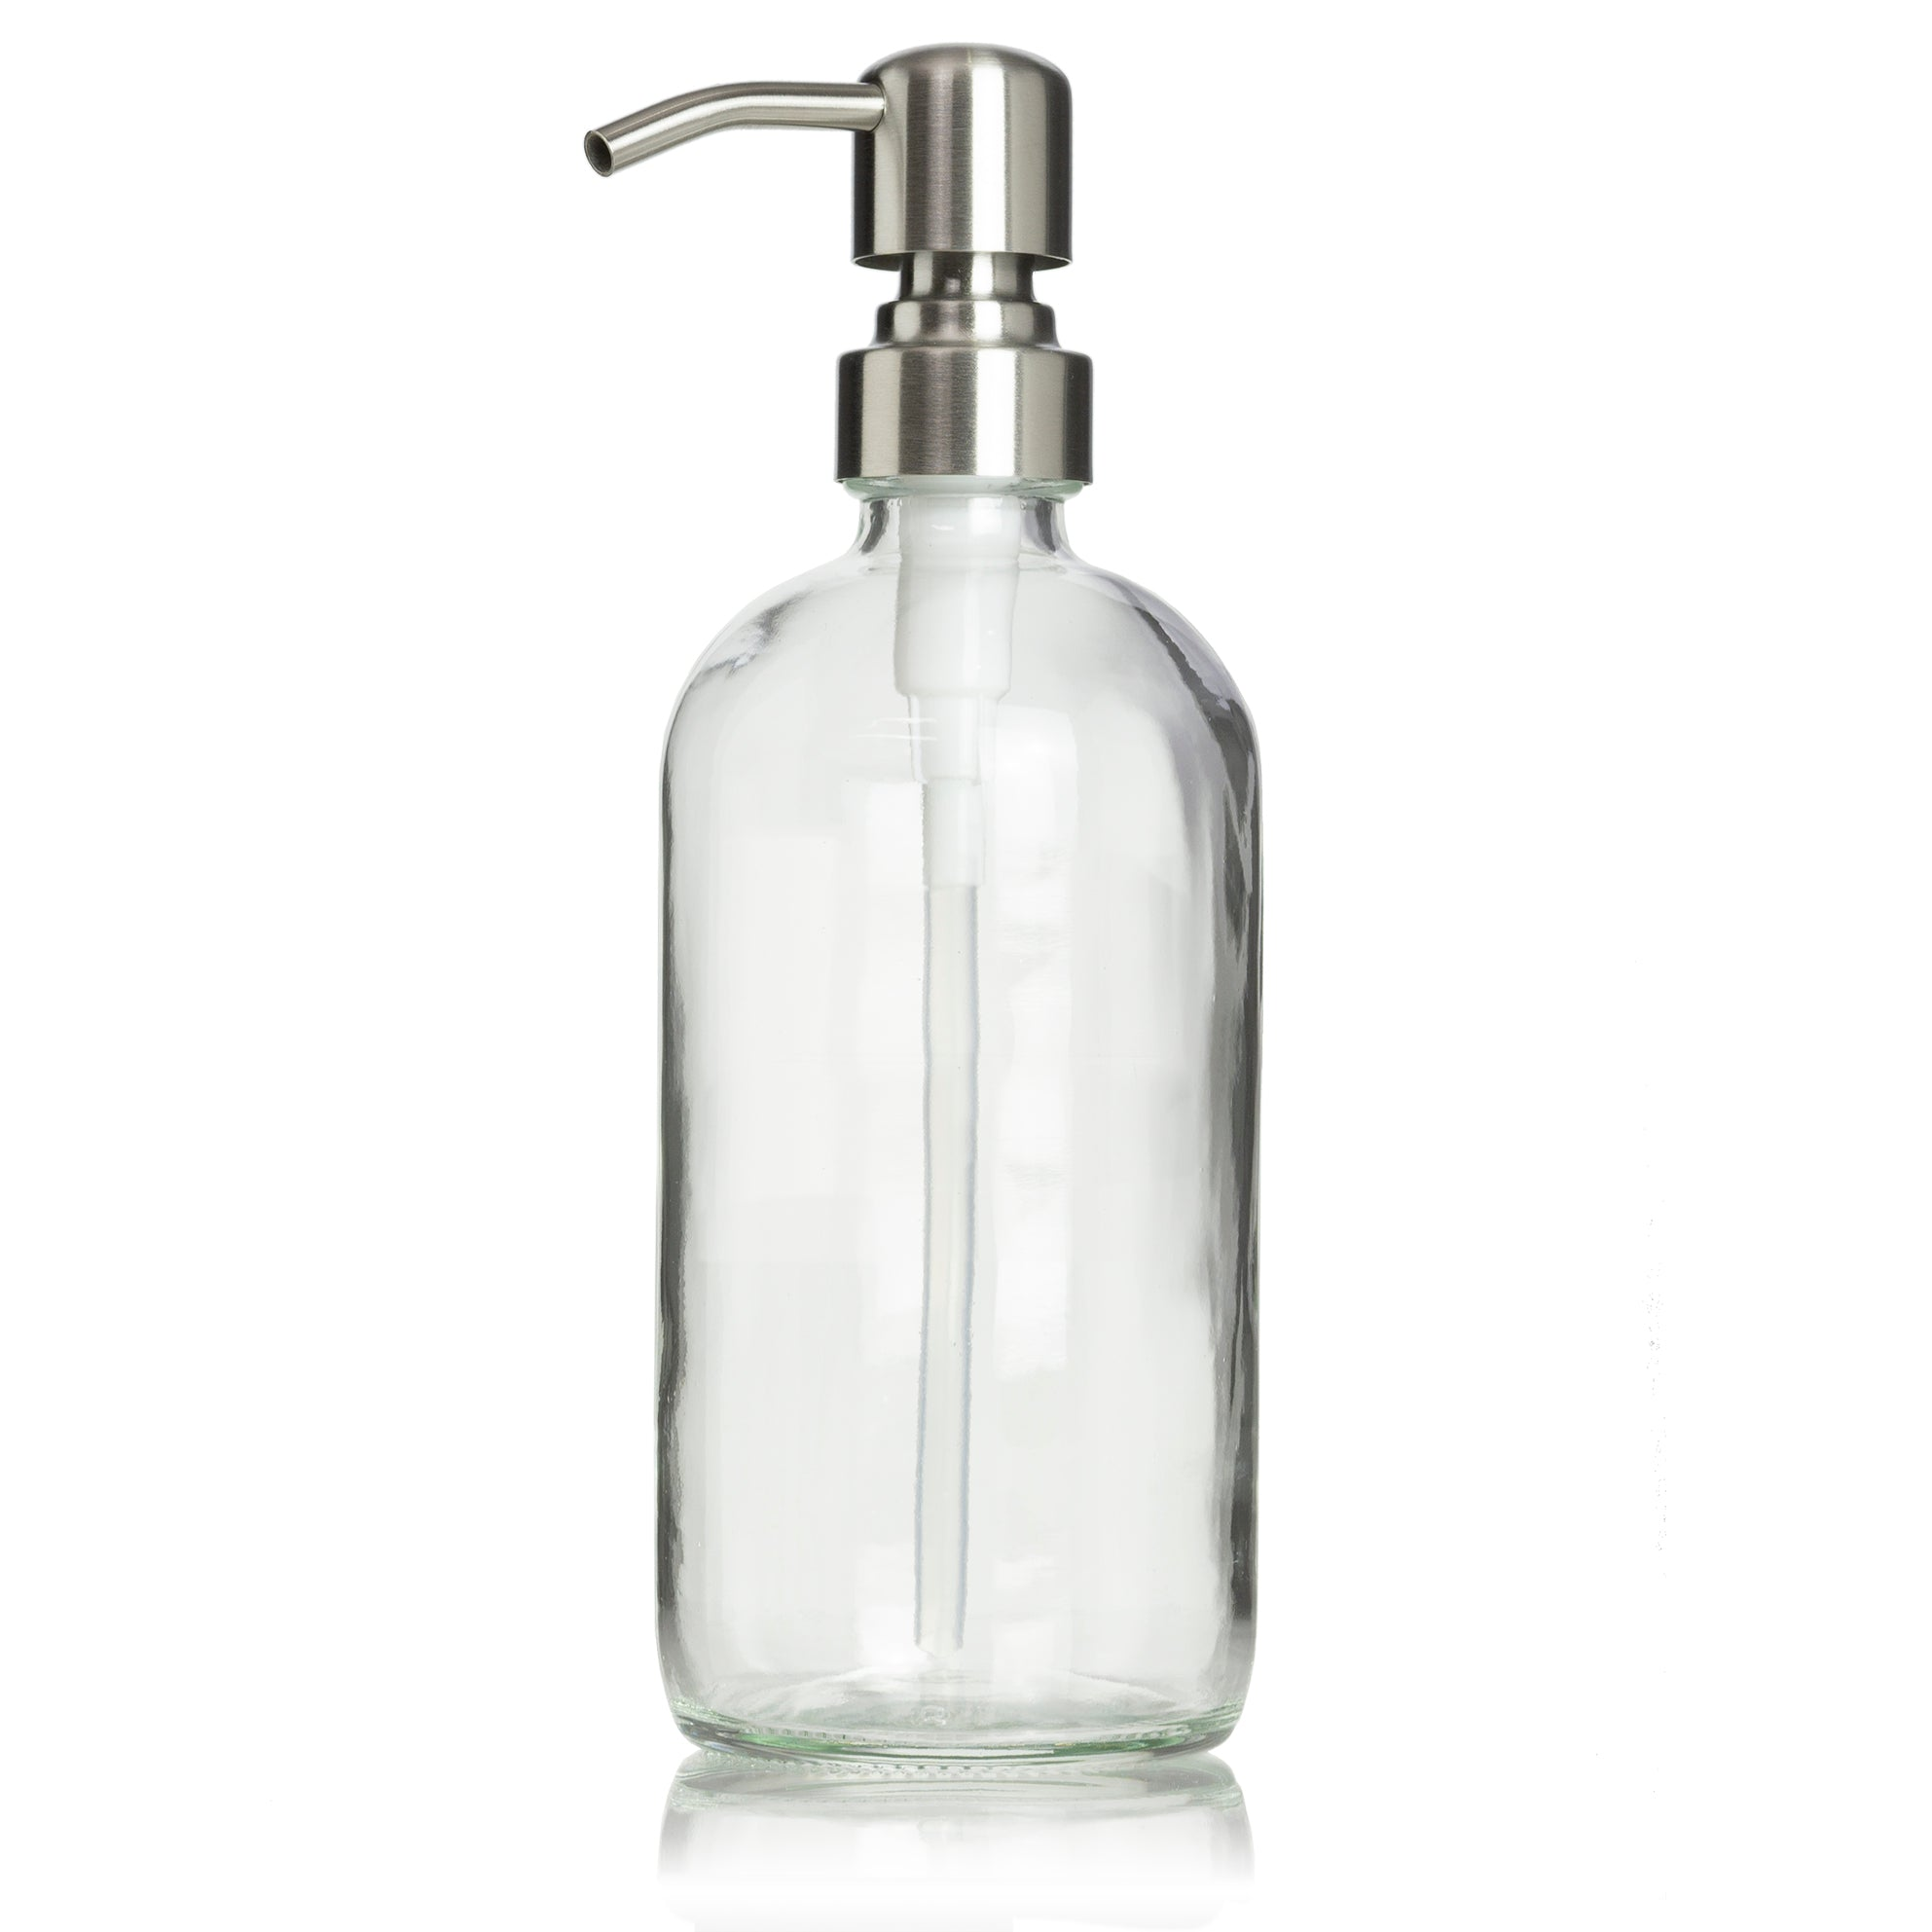 Clear Glass 16 oz Boston Round Pump Dispenser with Your Choice of Pump